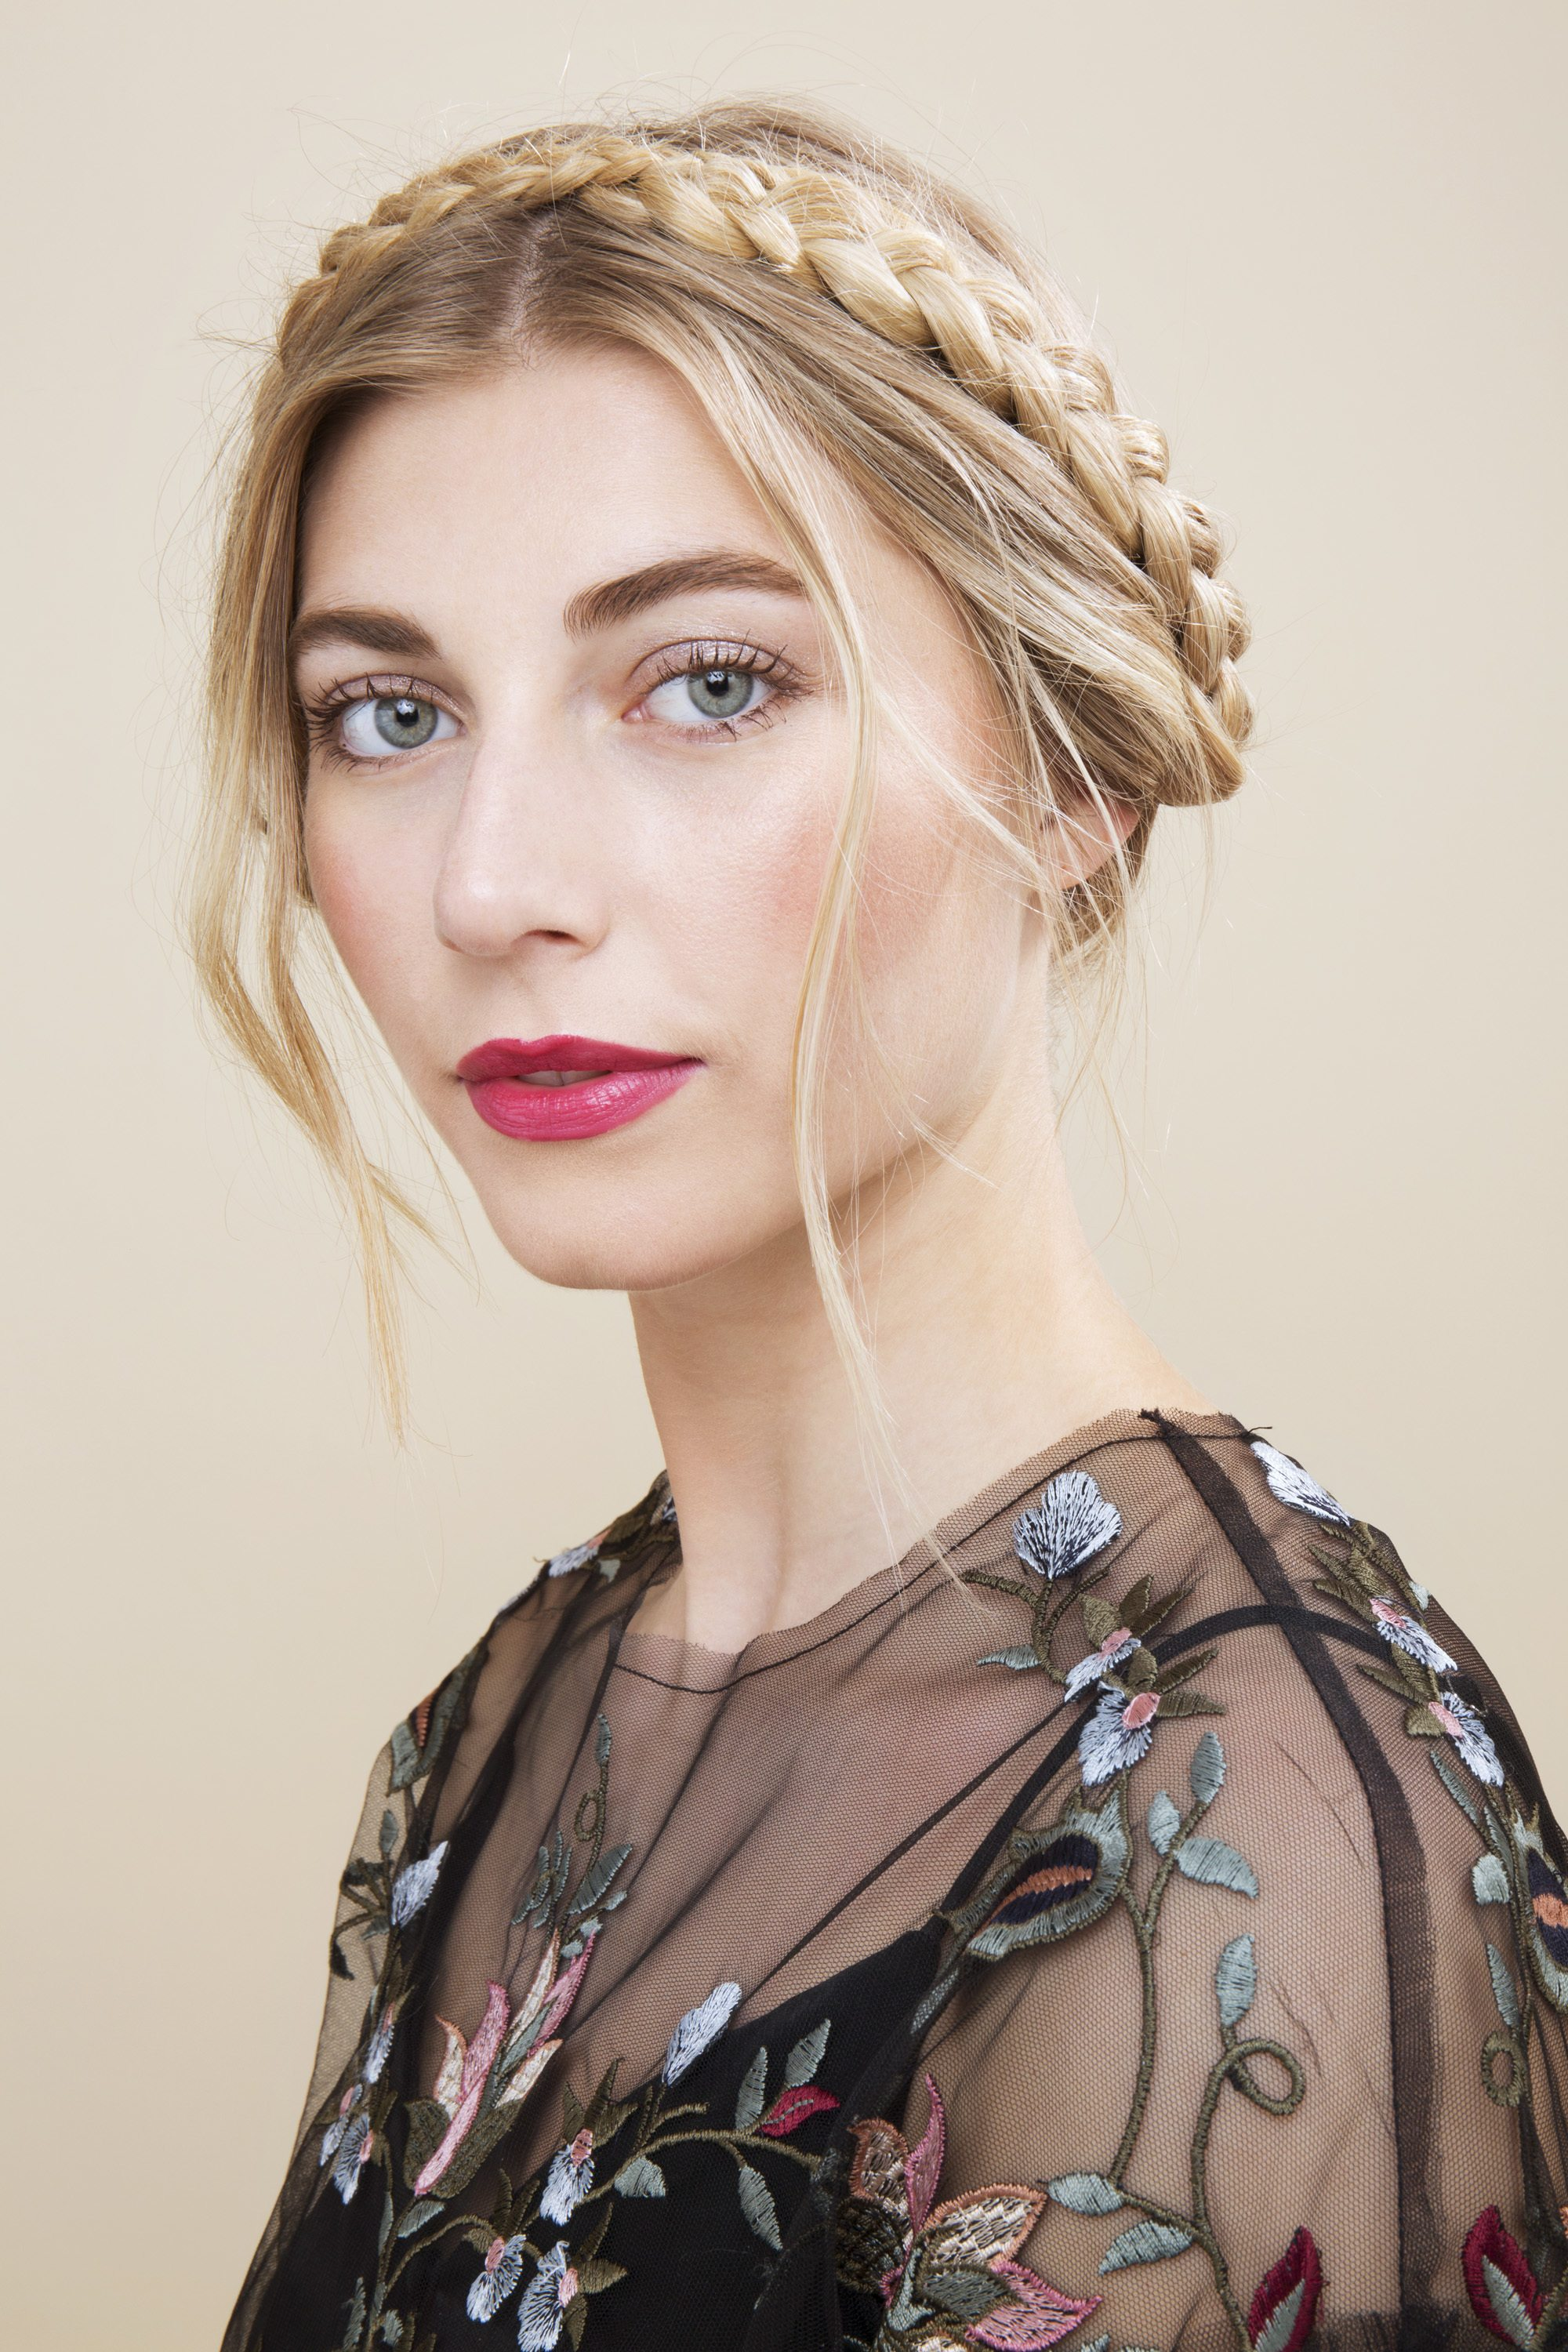 blonde model with hair in milkmaid braids and loose tendrils falling around hairline